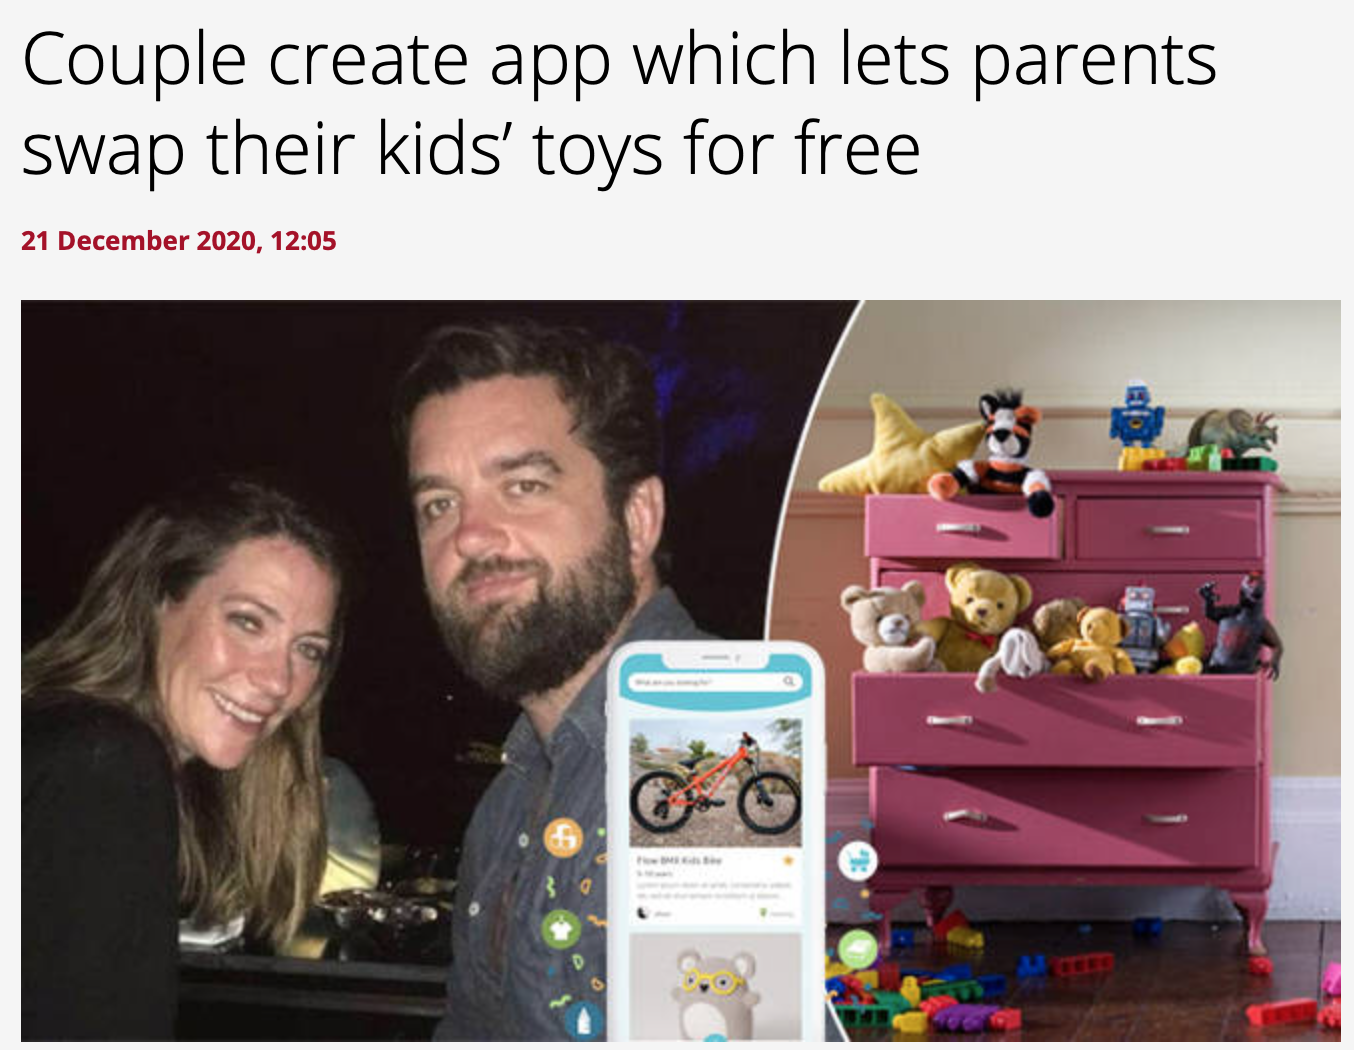 Heart article features YoungPlanet as a toy swapping platform to promote sustainable decluttering.